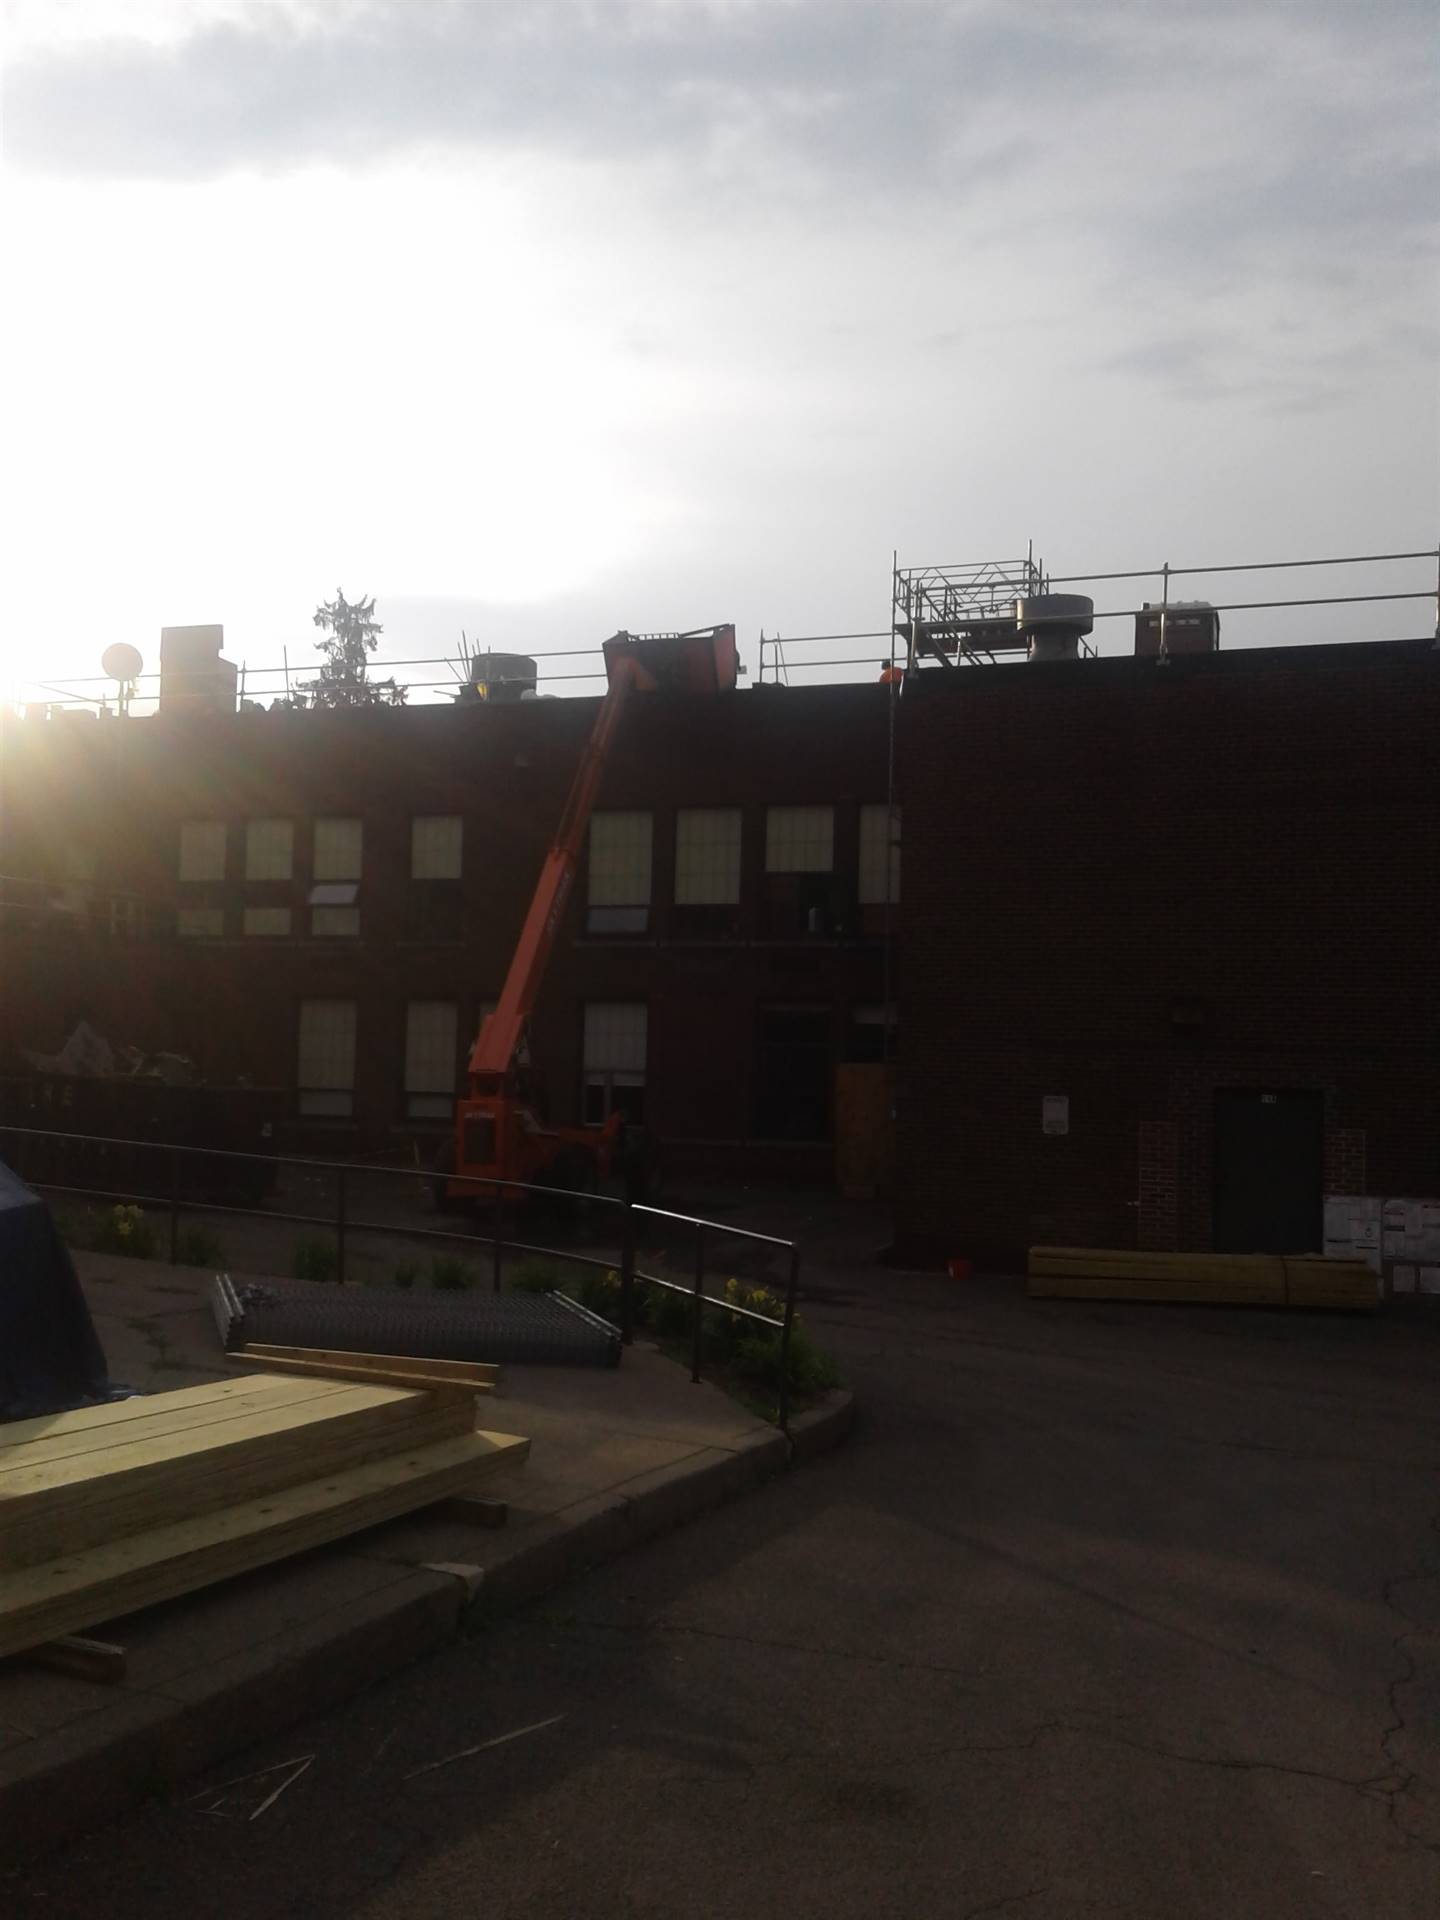 Despite the rainy days, roofing continues at the High School.